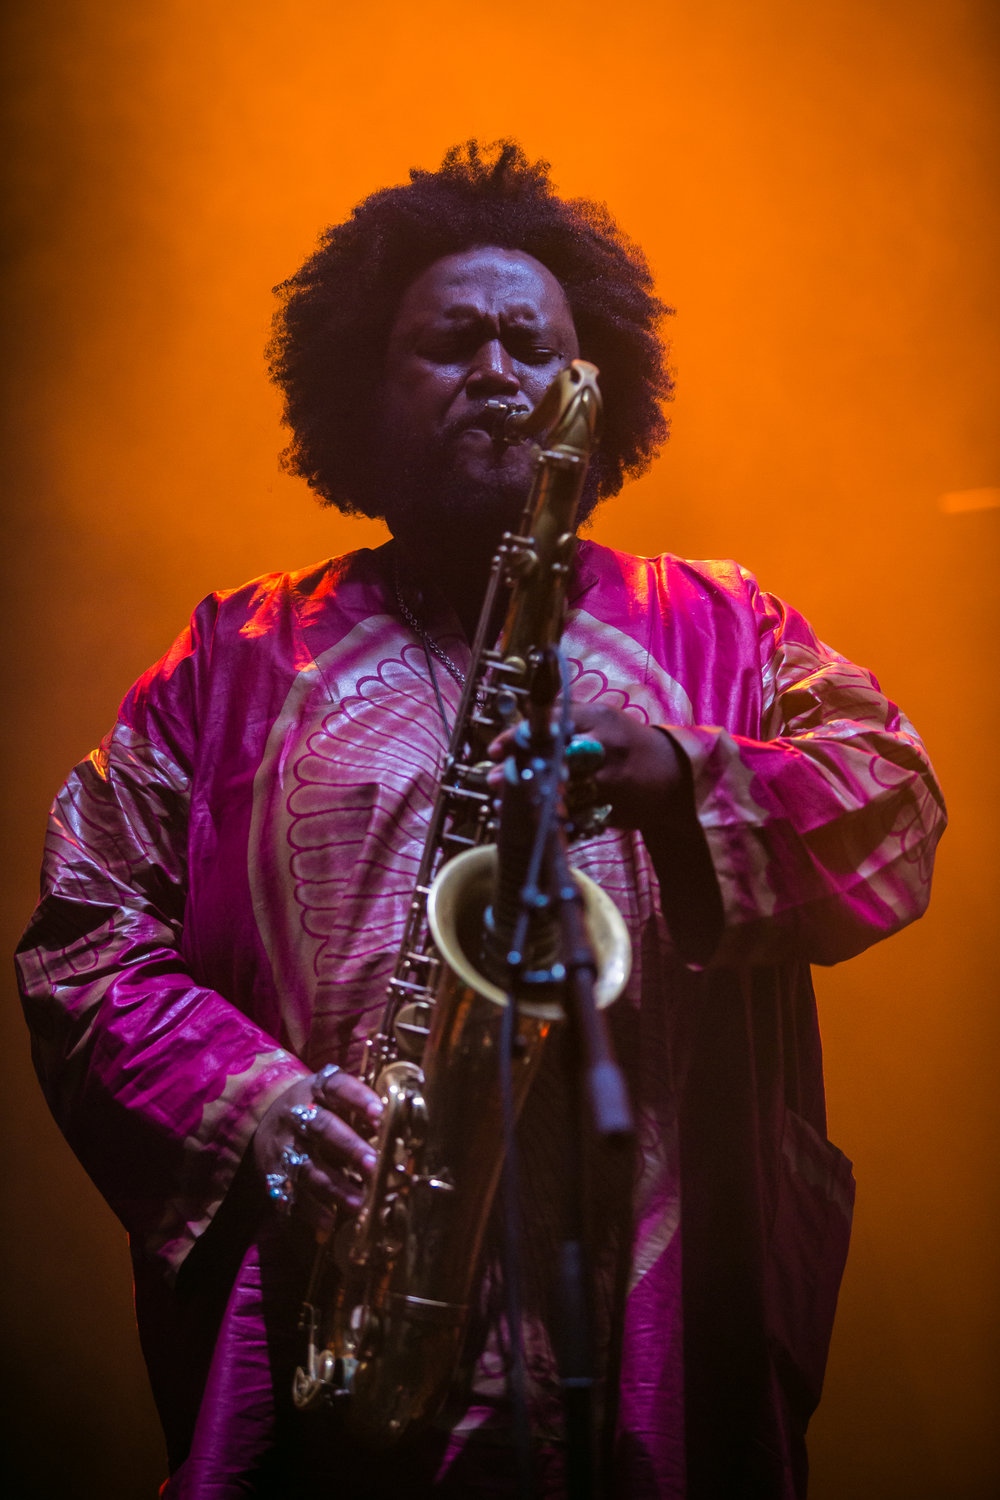 Kamasi Washington at Primavera Sound